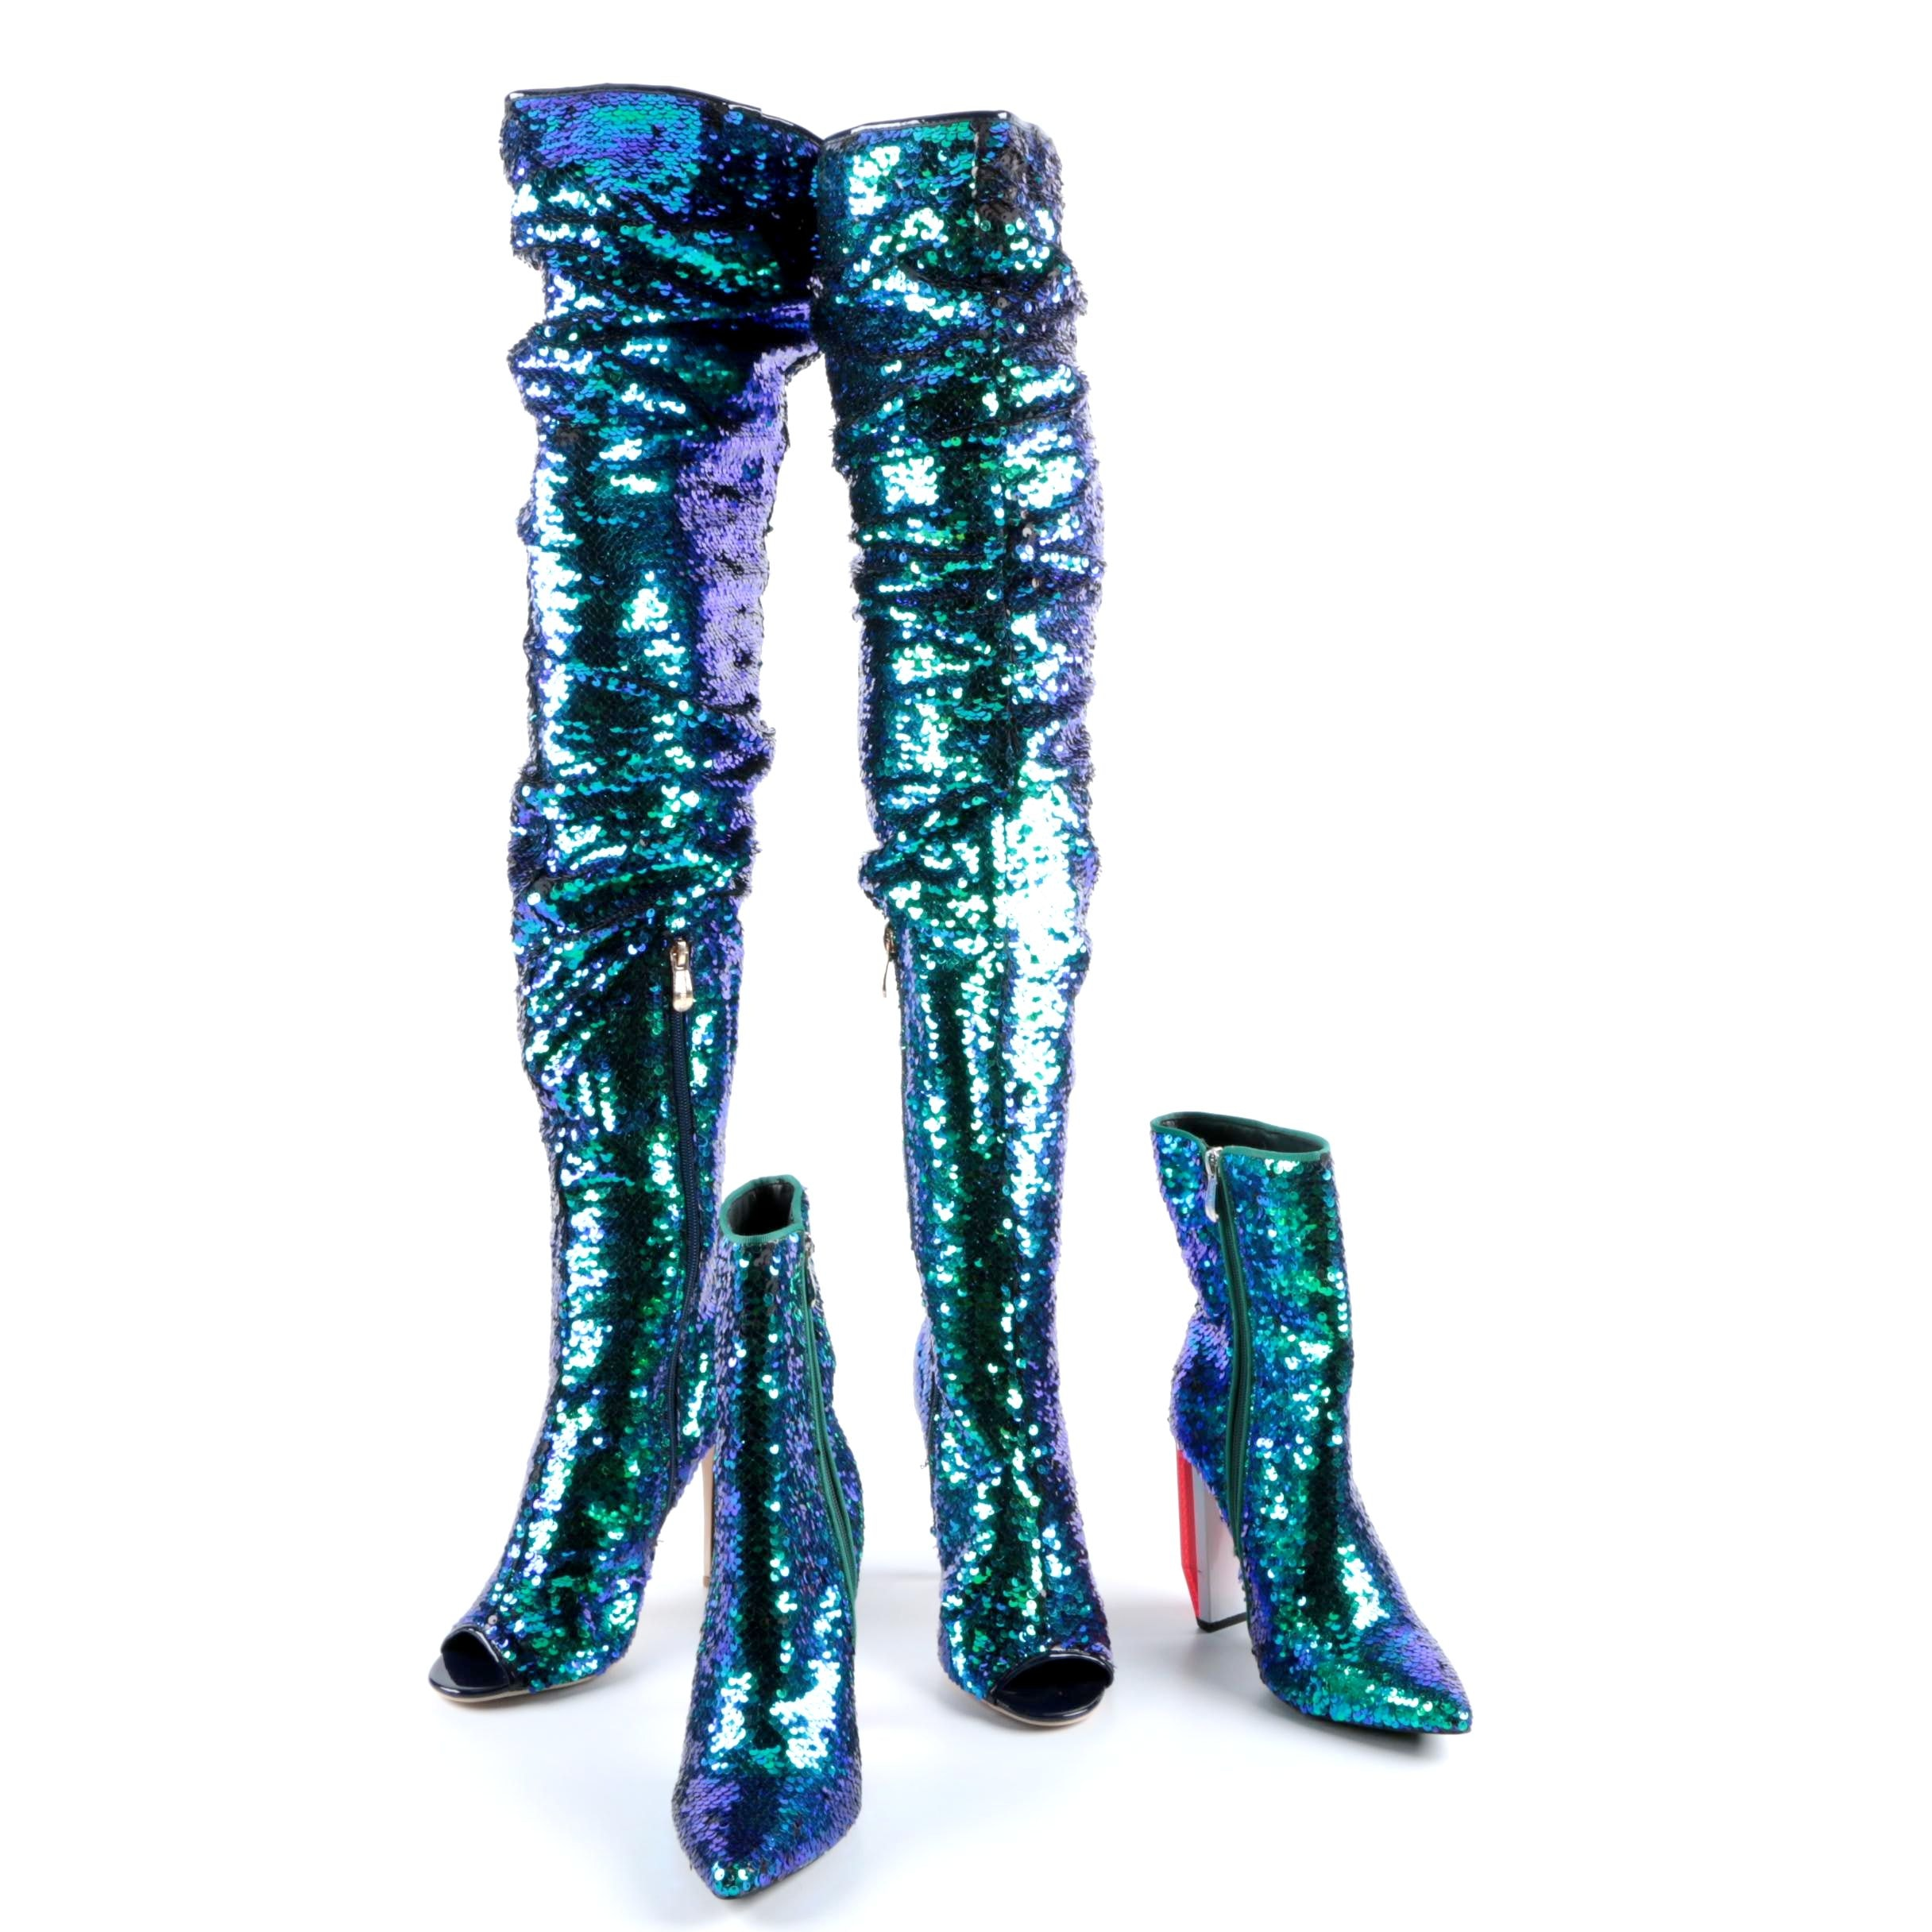 Cape Robbin Sequined Thigh High Boots and Terra Sequined Boots